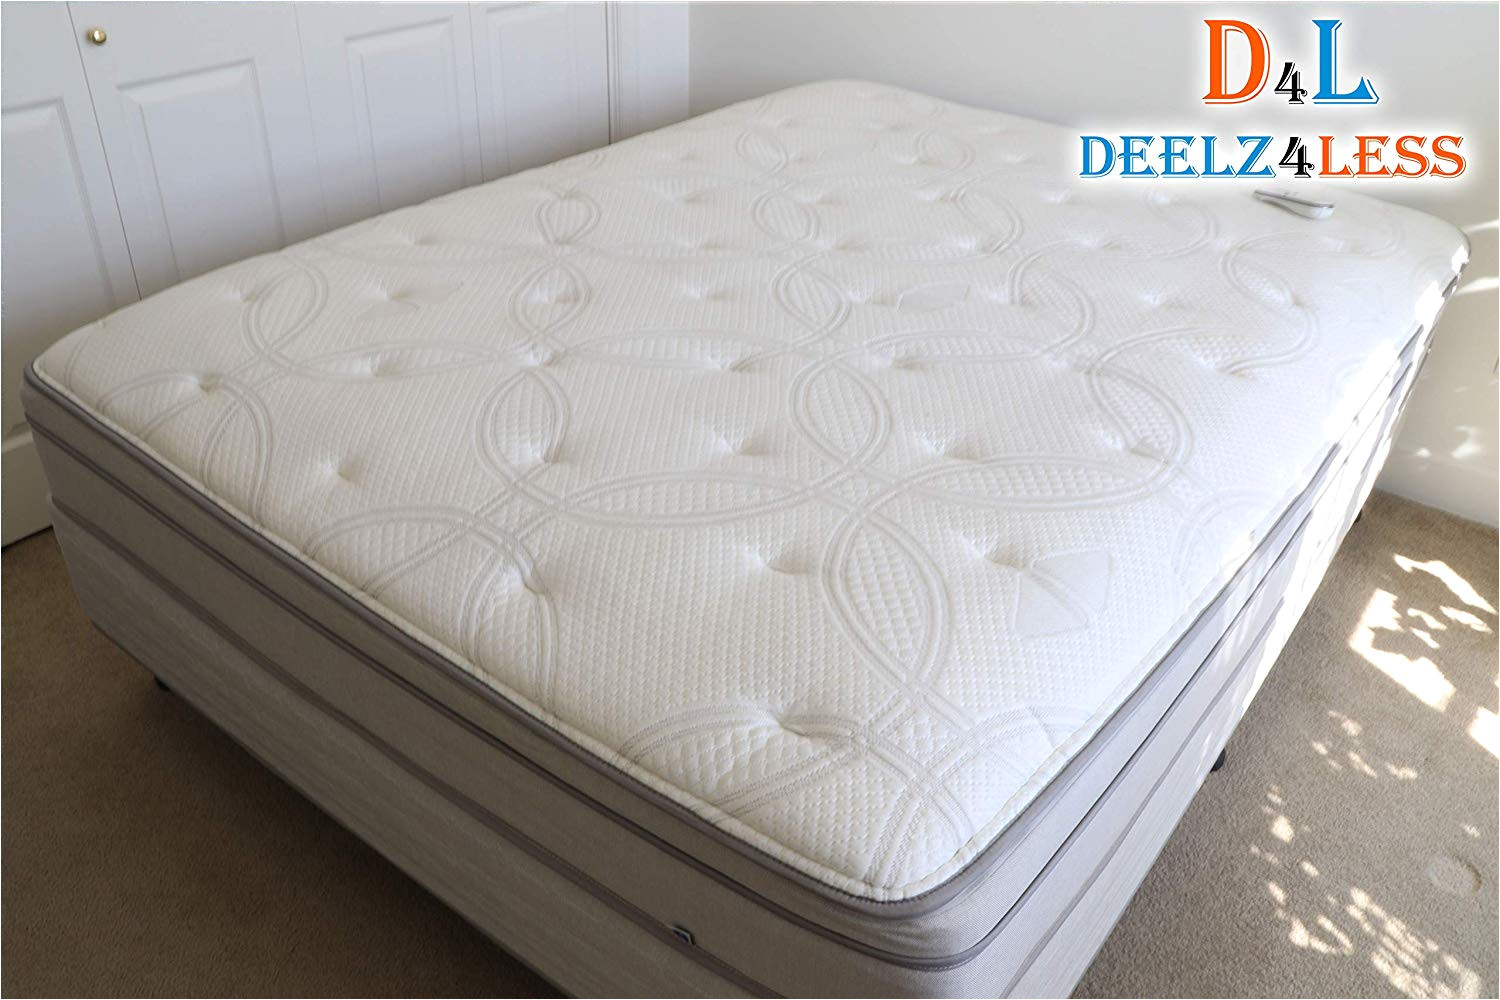 amazon com used select comfort sleep number queen size complete mattress p5 model comes 2 chambers dual hose pump wireless remote home kitchen